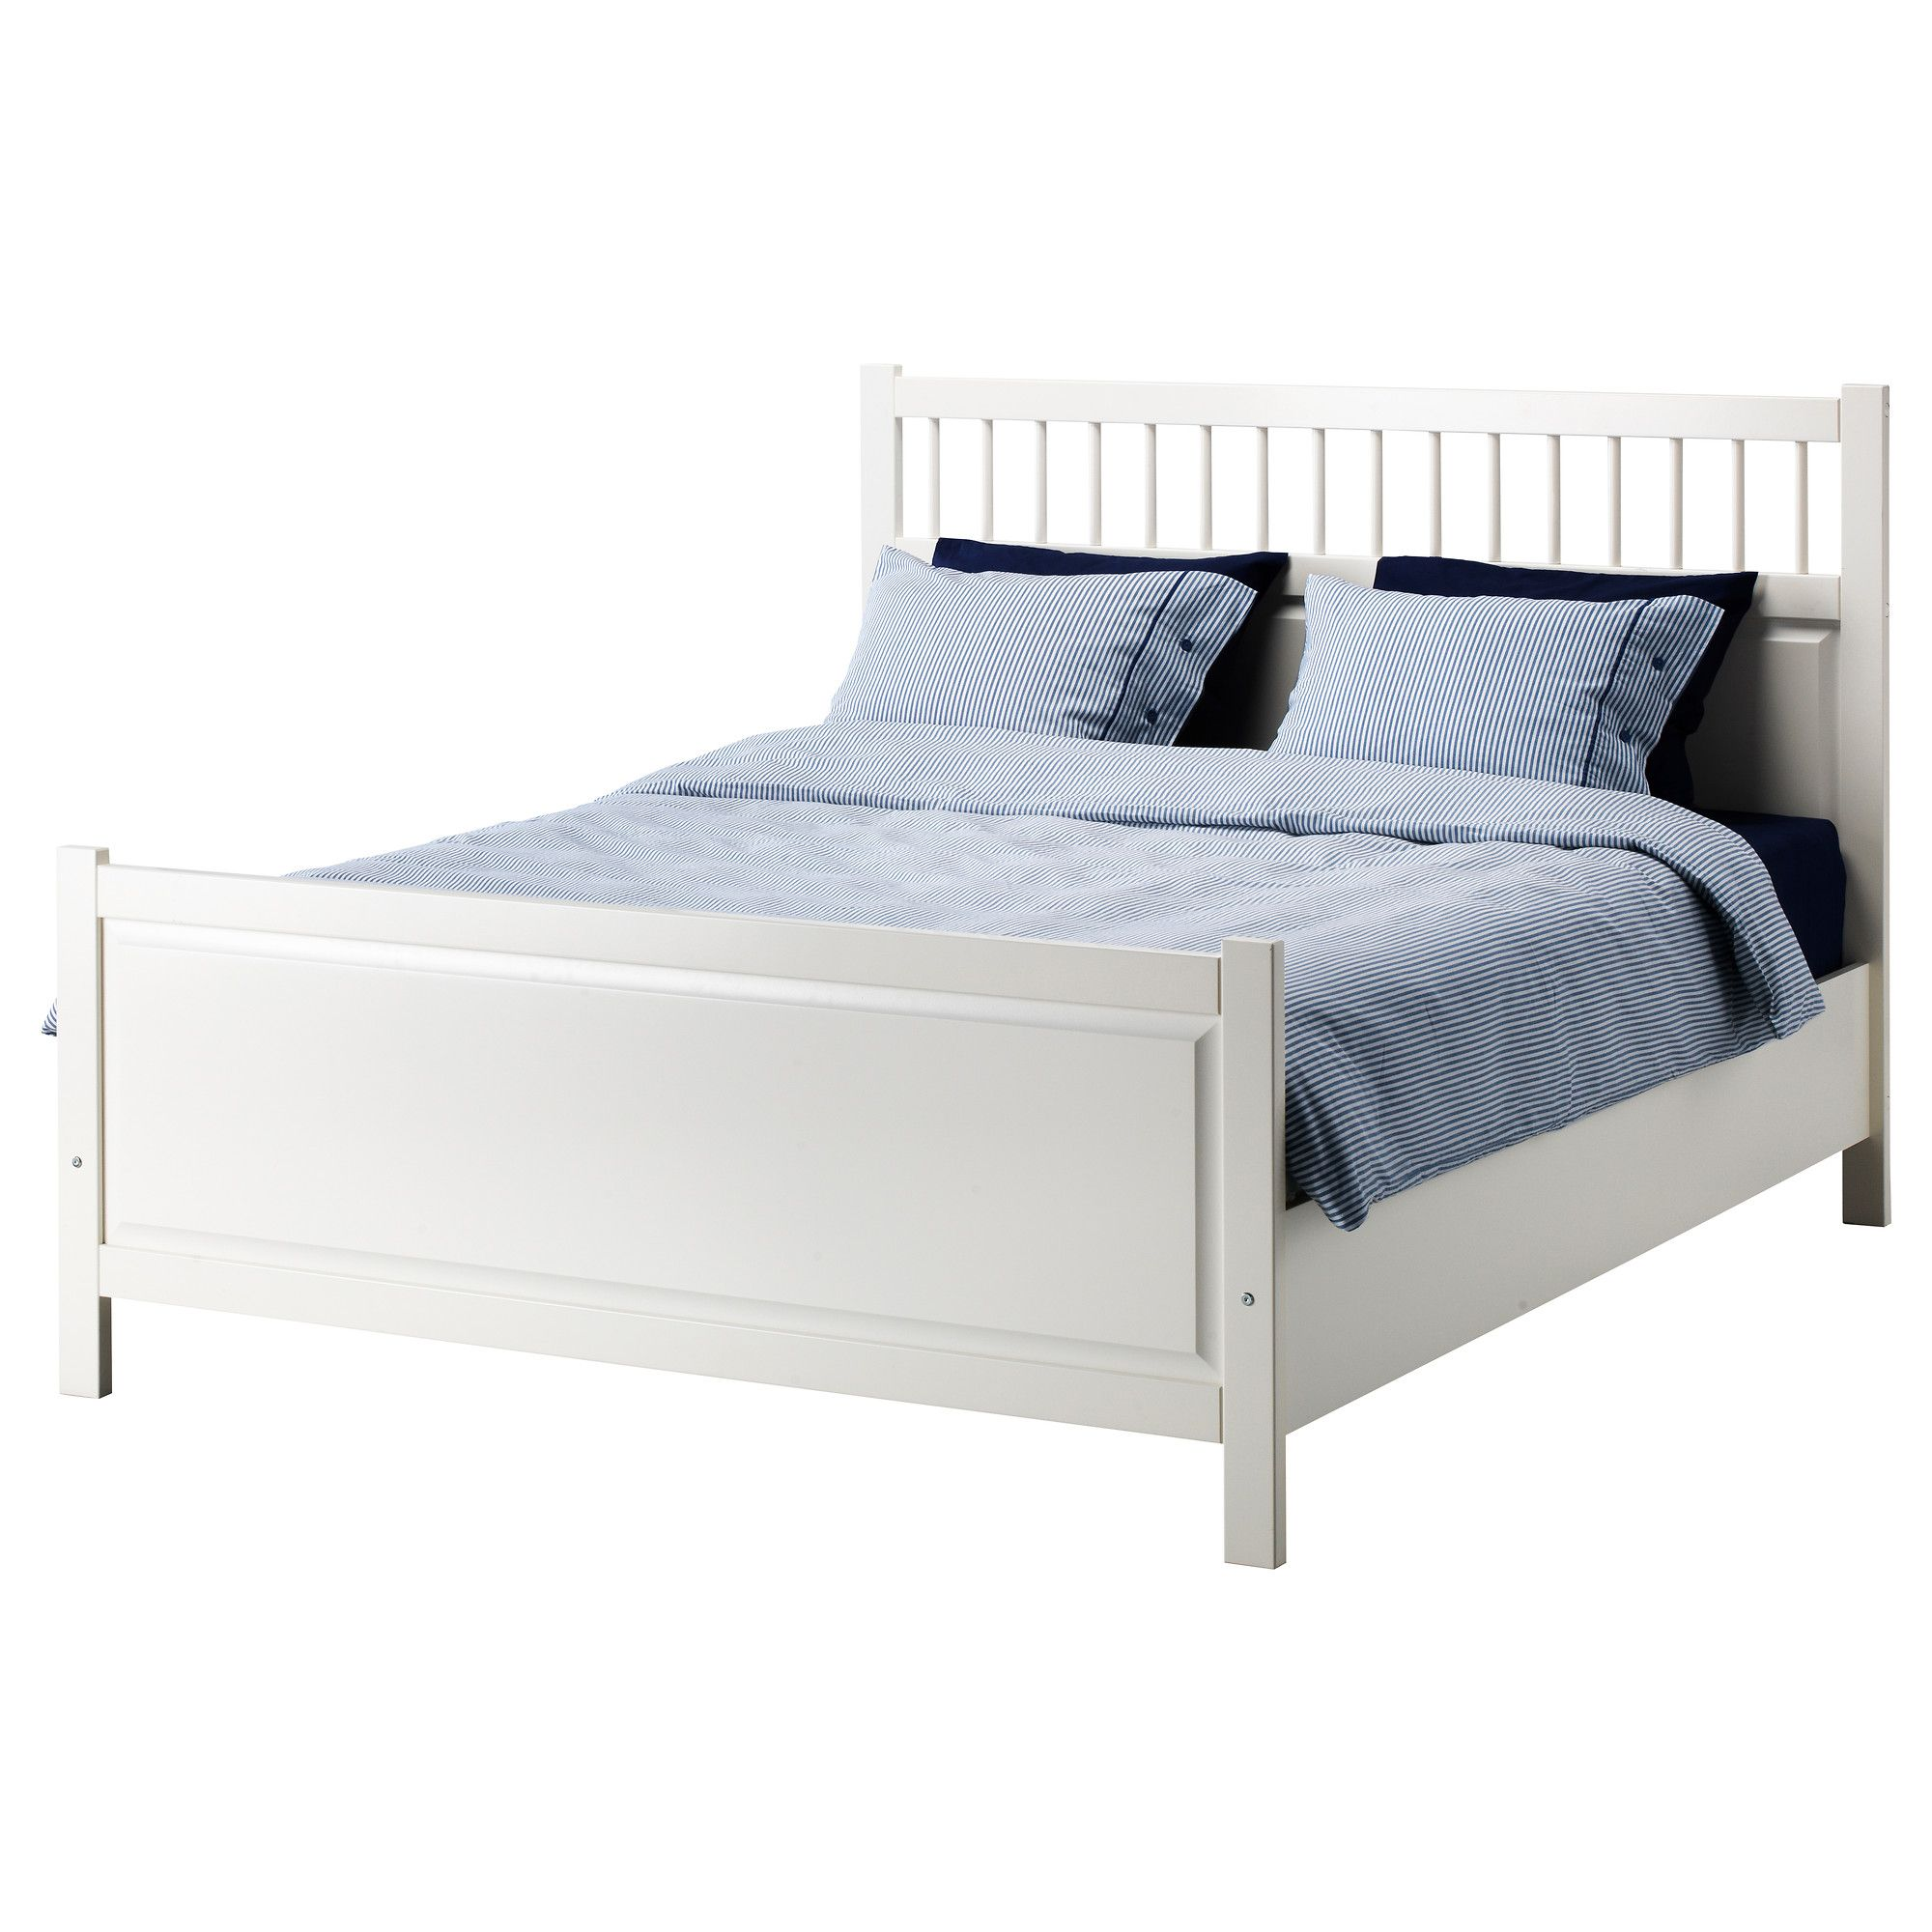 apartment furniture - Full White Bed Frame